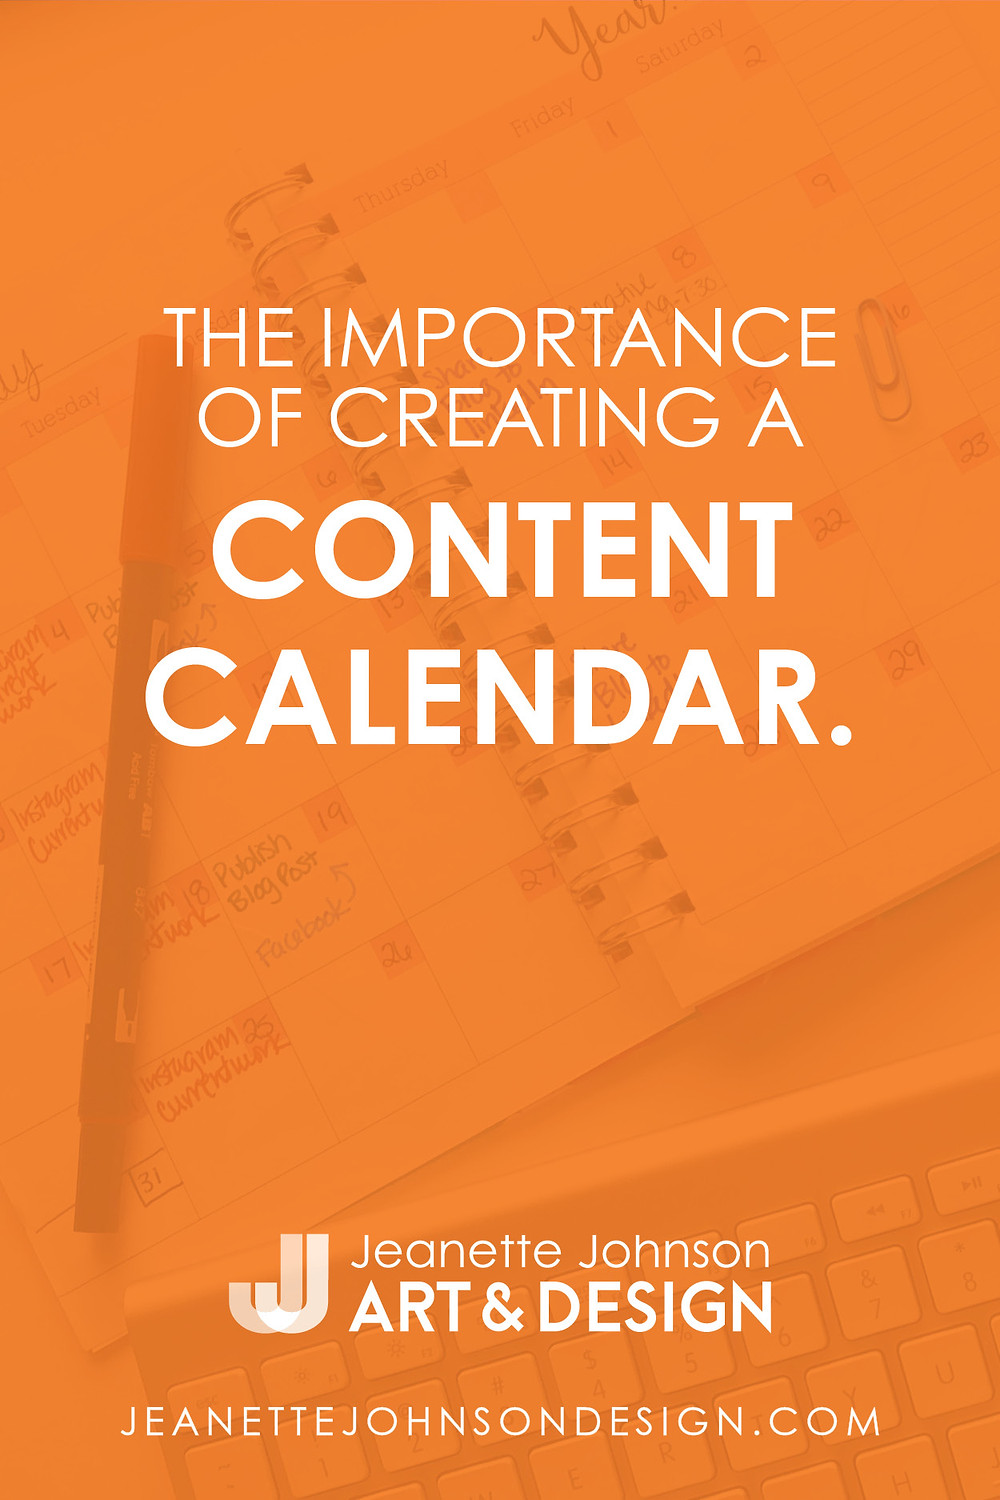 Pin Image for Importance of Creating a Content Calendar article